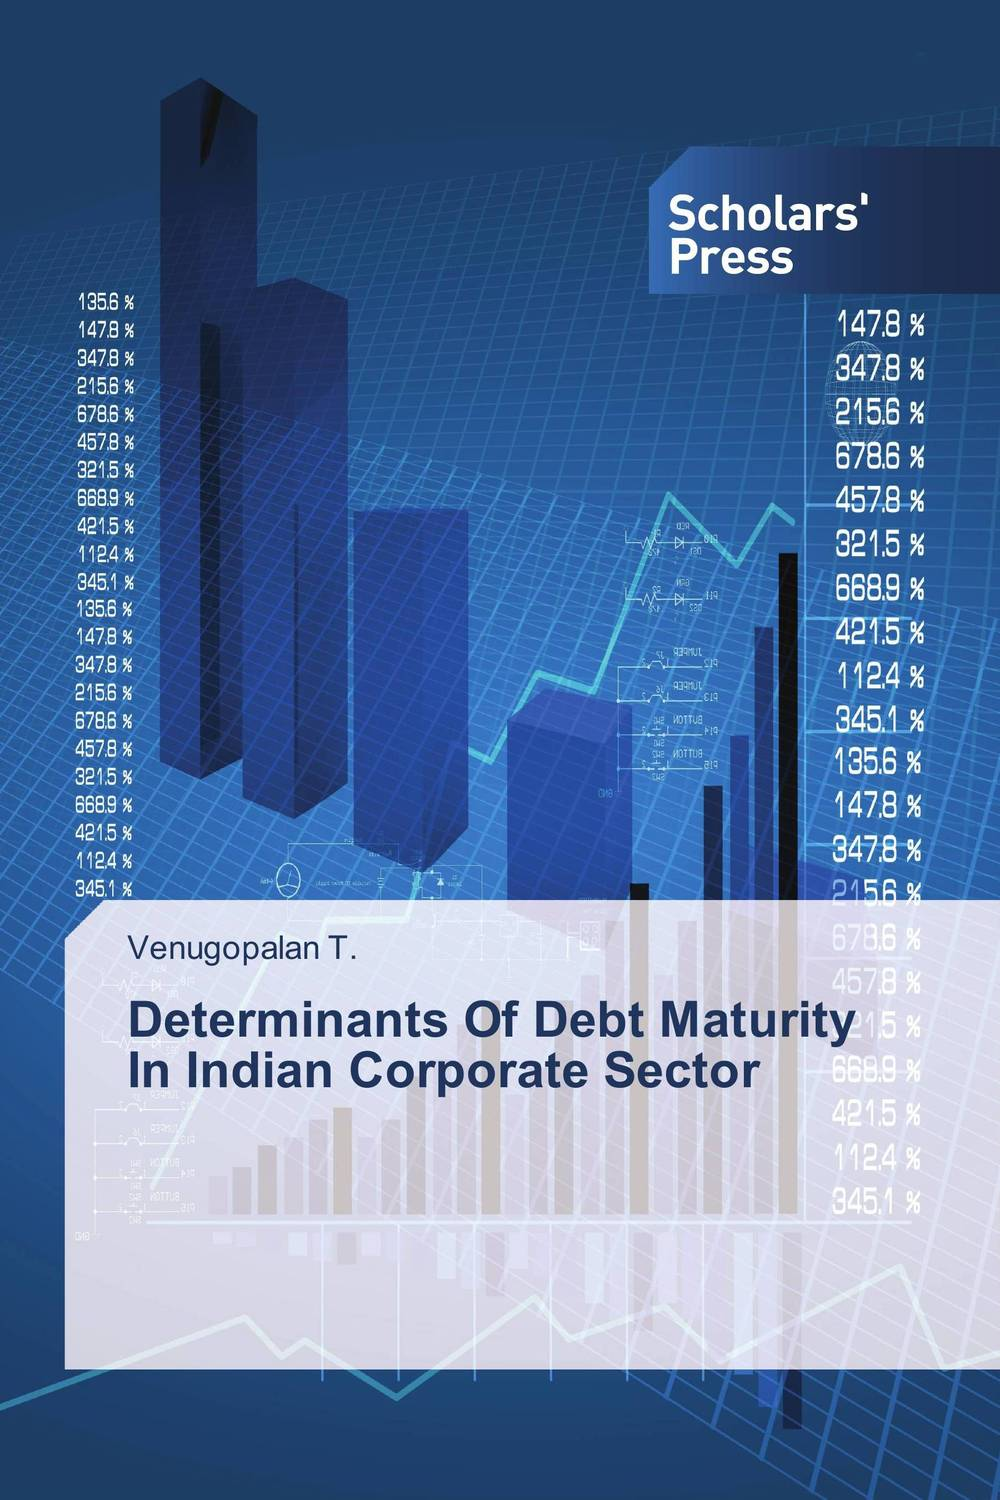 Determinants Of Debt Maturity In Indian Corporate Sector